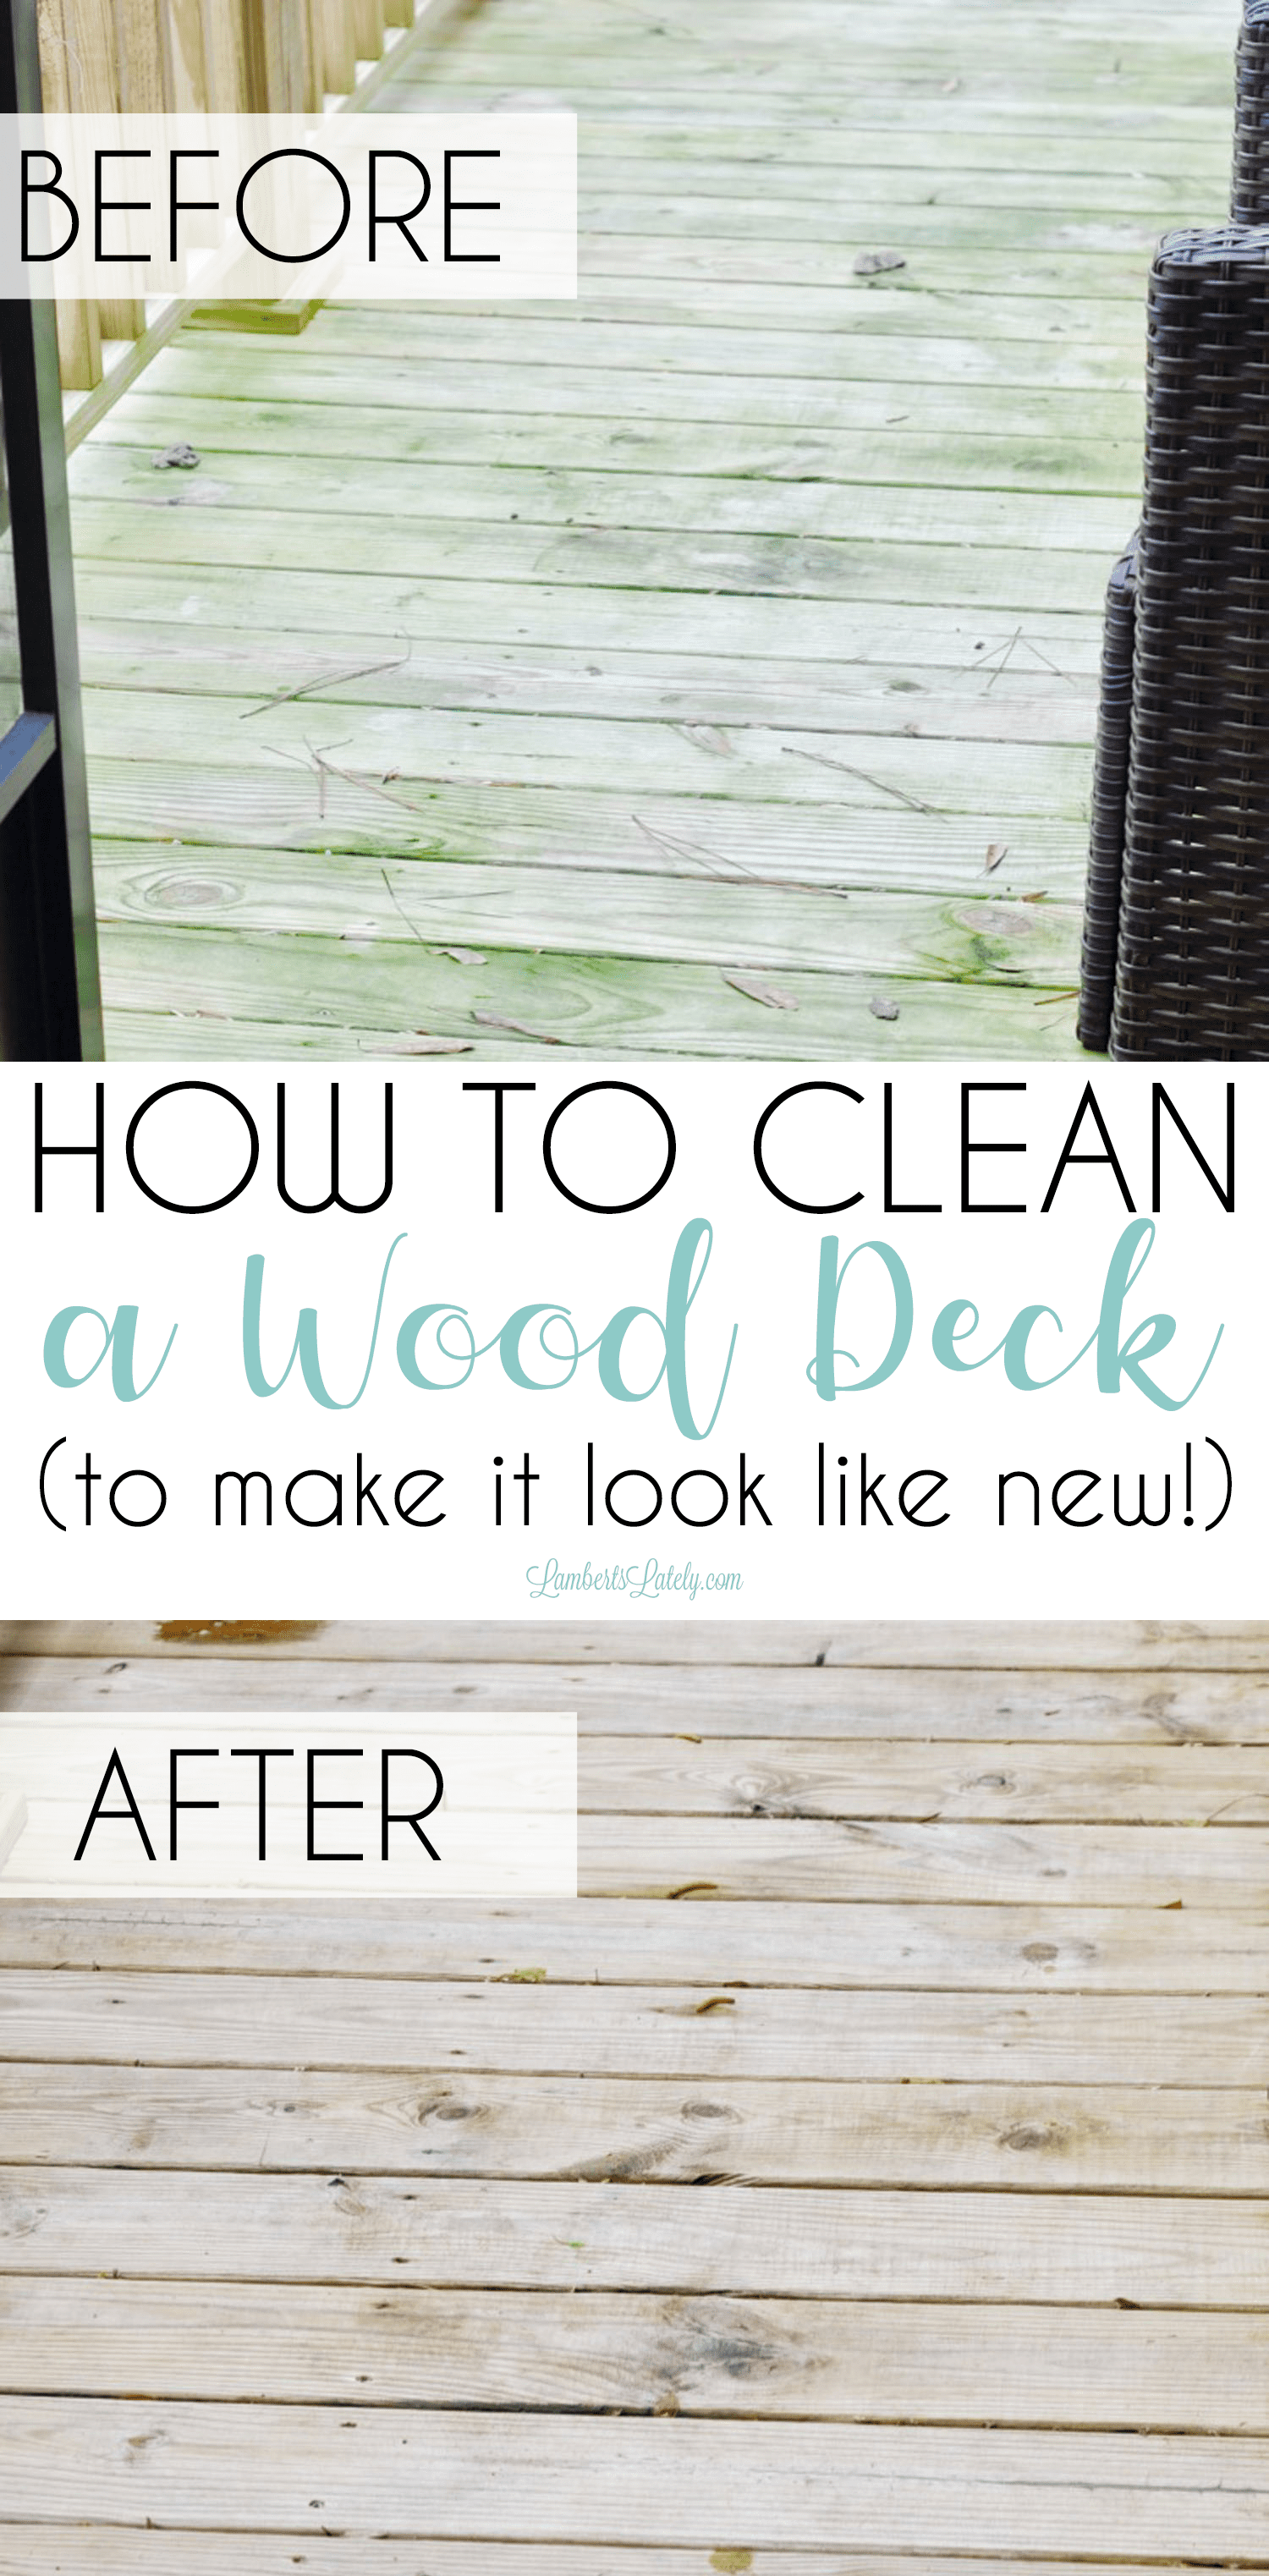 This post has great methods for cleaning a wood deck with both OxiClean and a more long-term product.  It shows how to remove stubborn green stains to make it look new for months! Methods can be used for other outdoor surfaces like driveways and patios too.